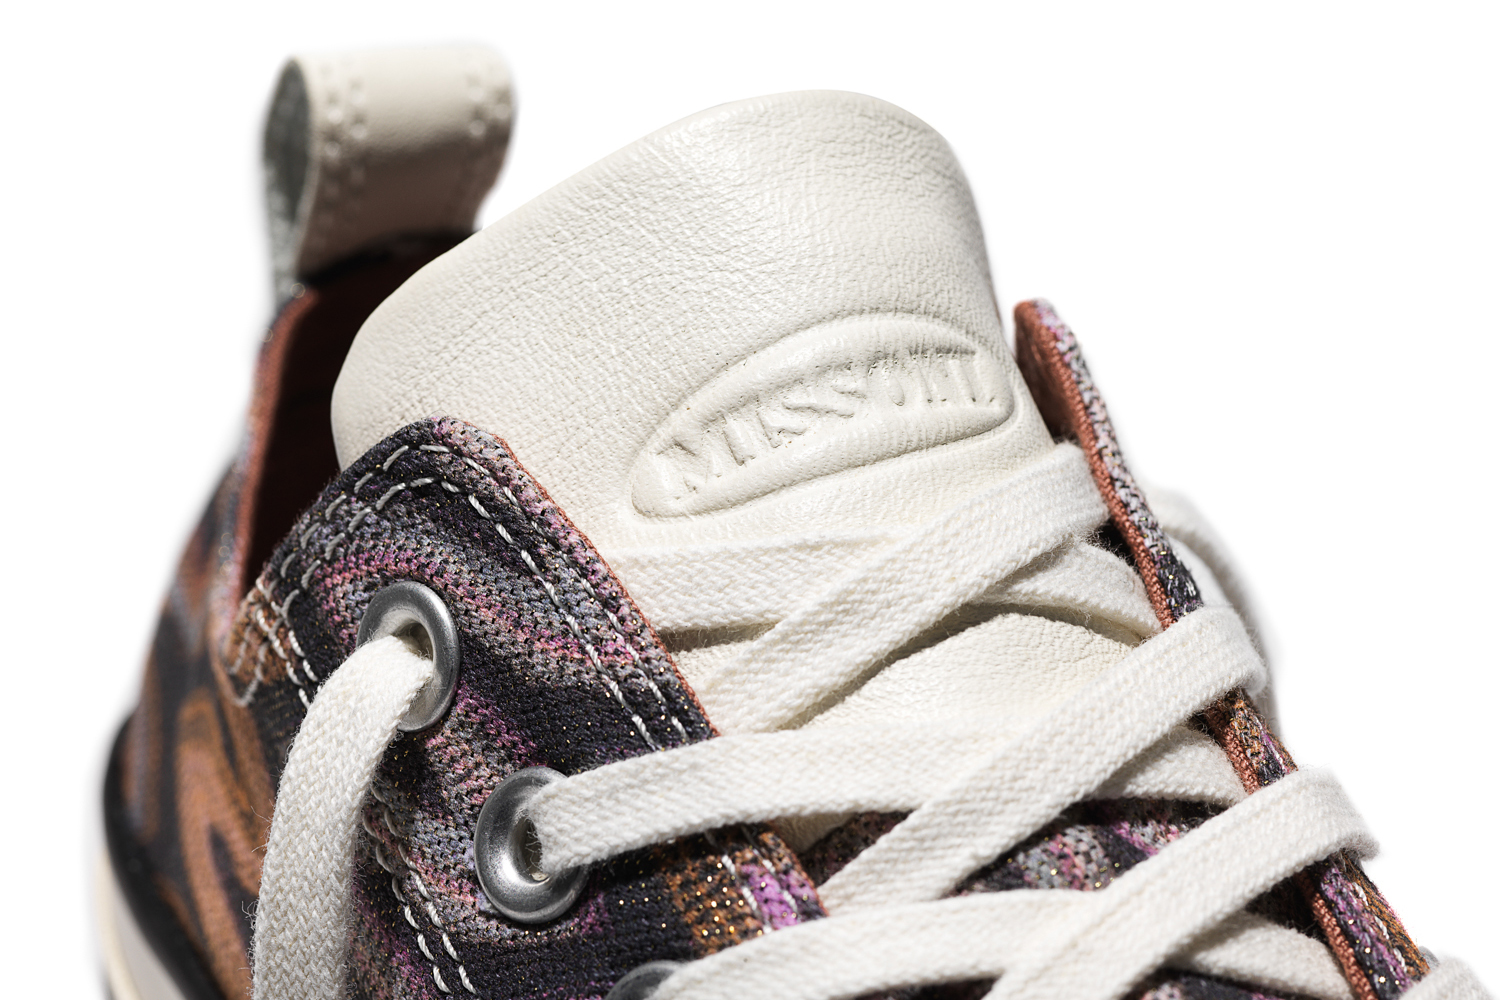 The Latest Missoni For Converse Collection Is Kind Of Amazing The Latest Missoni For Converse Collection Is Kind Of Amazing new picture